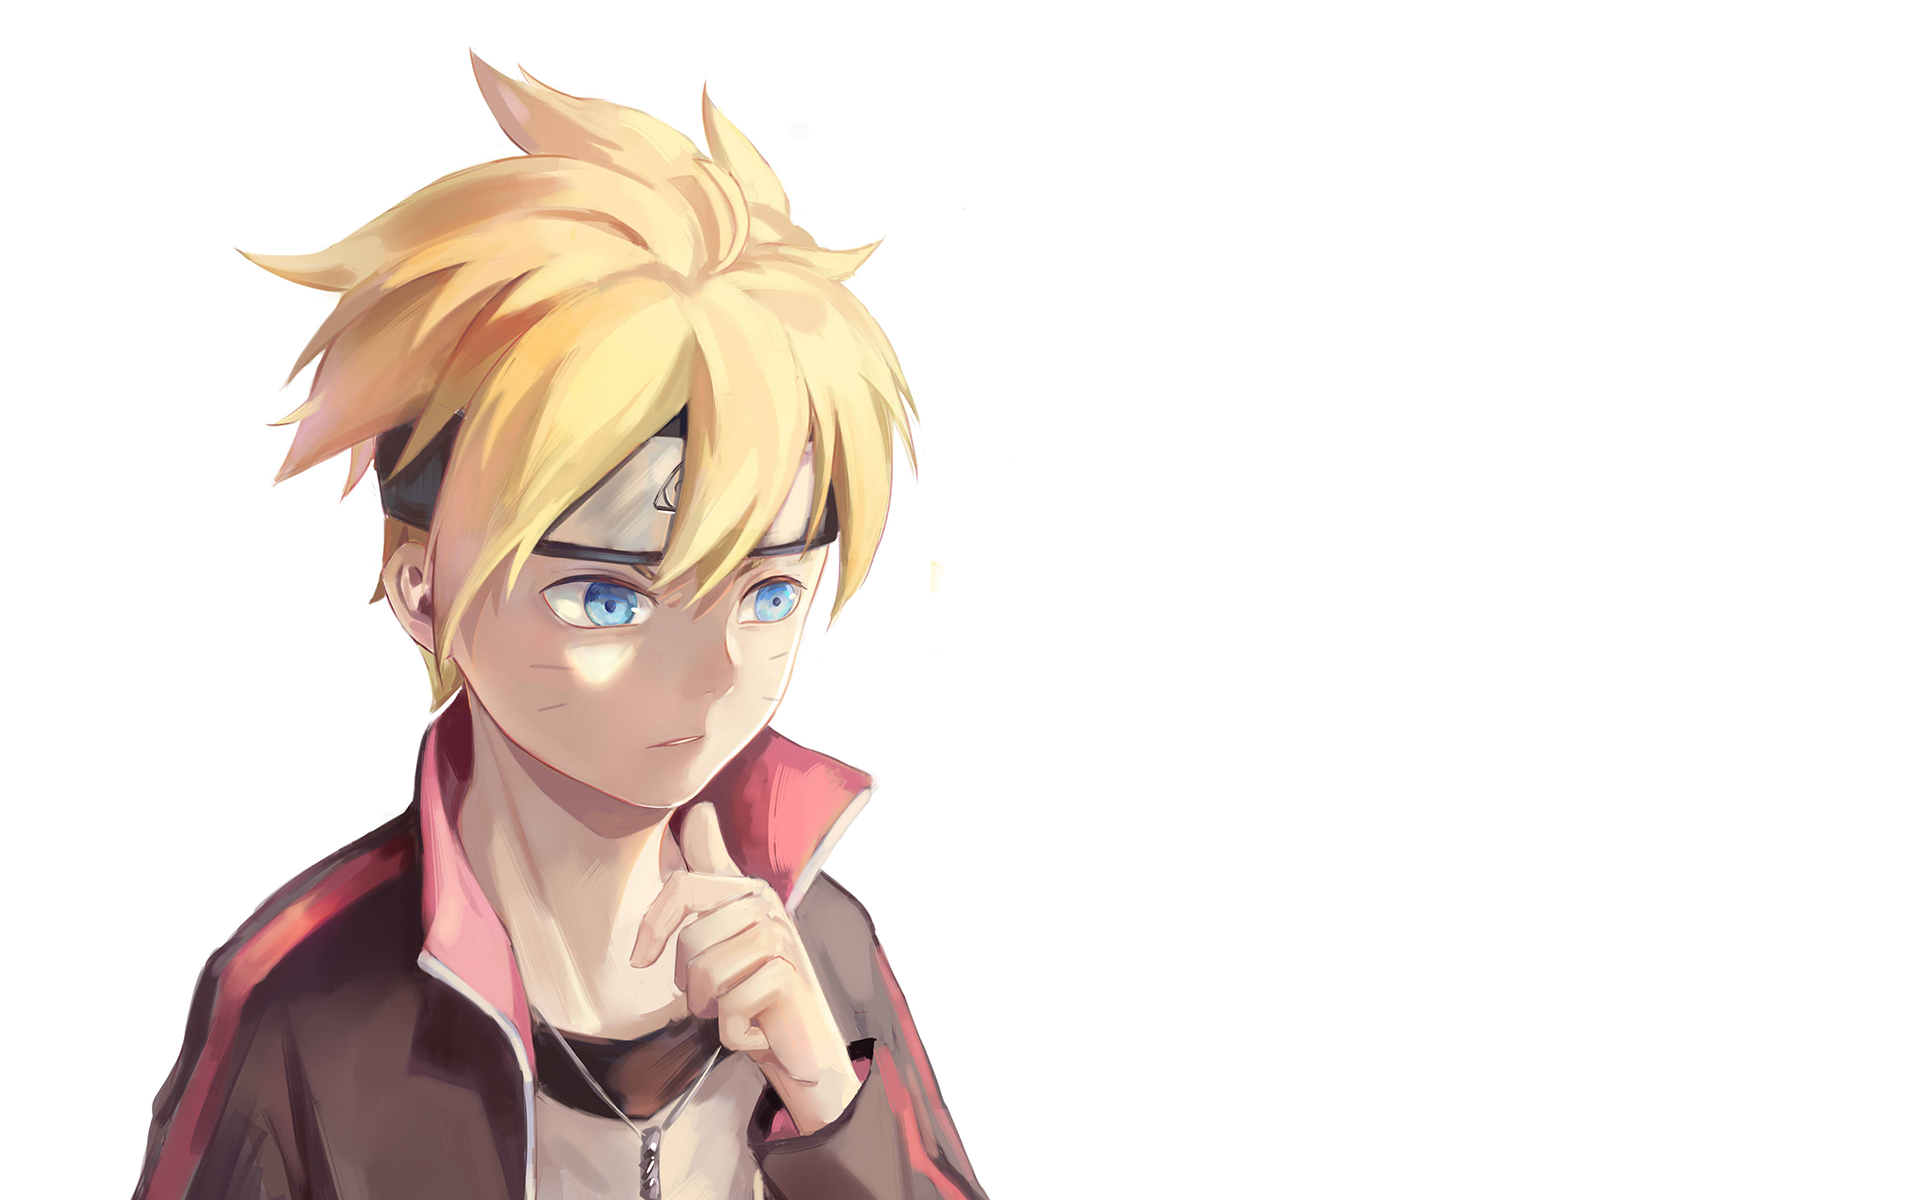 Anime Boruto Boruto Uzumaki Wallpaper